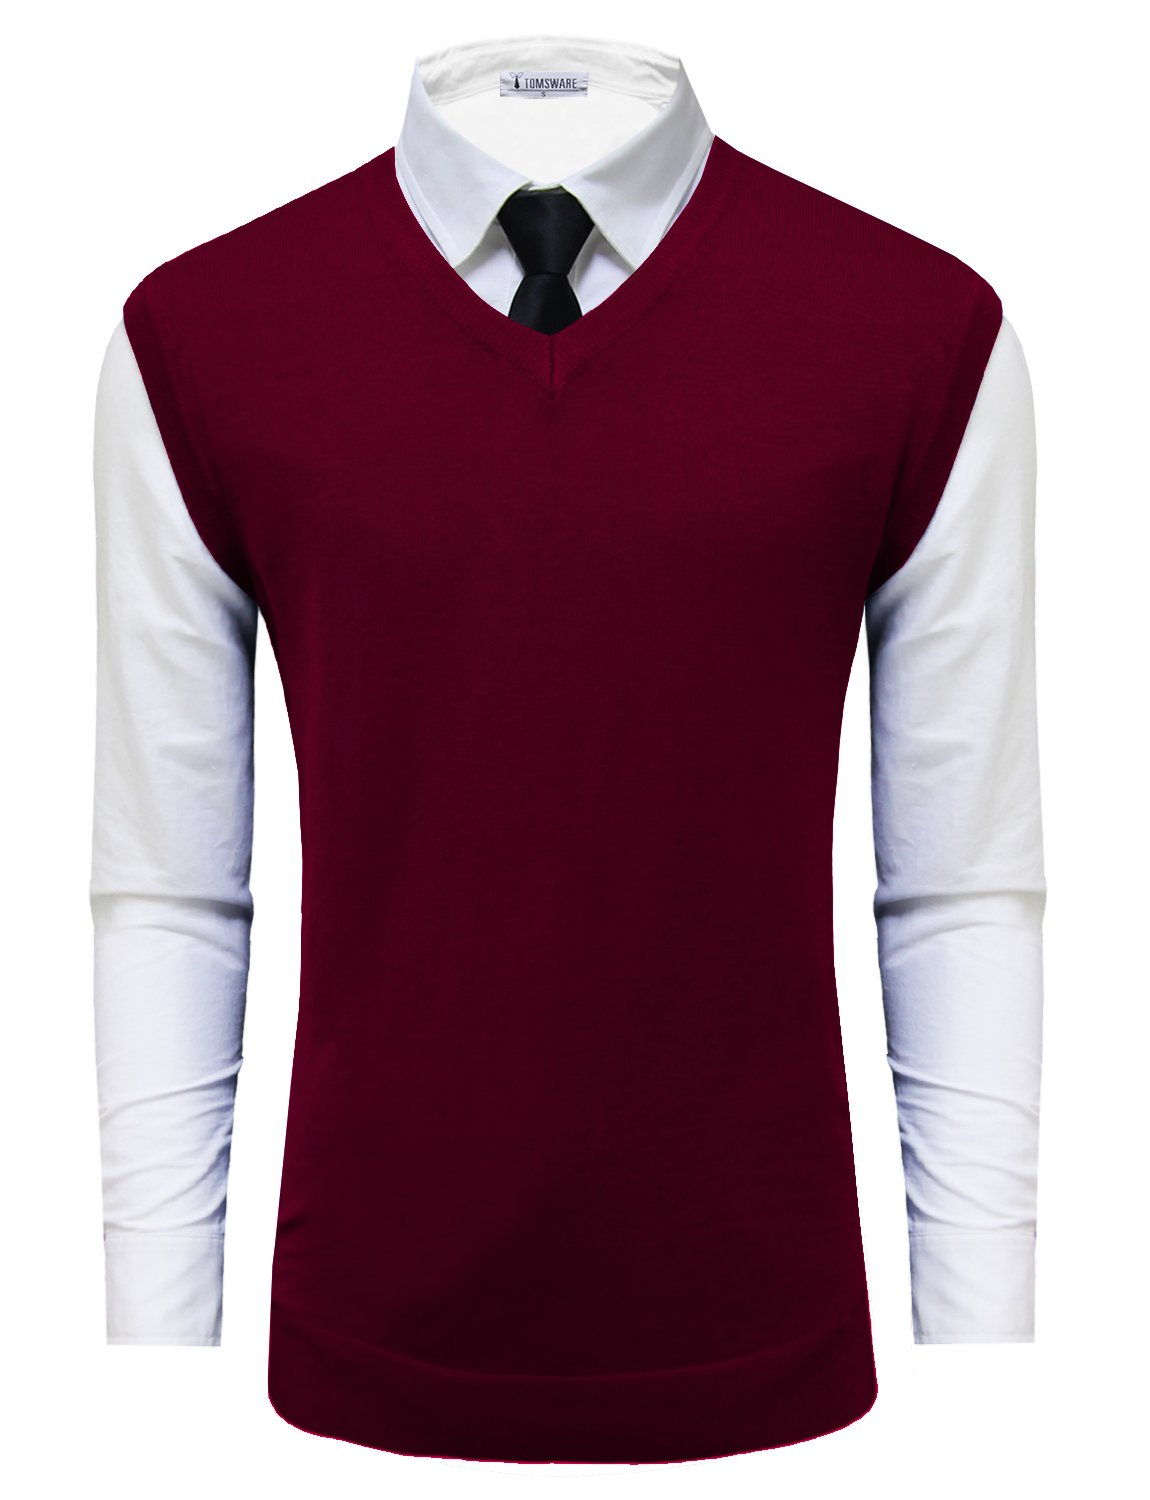 Tom's Ware Mens Casual Pullover V-Neck Sweater Vest TWMV05-WINE-US L